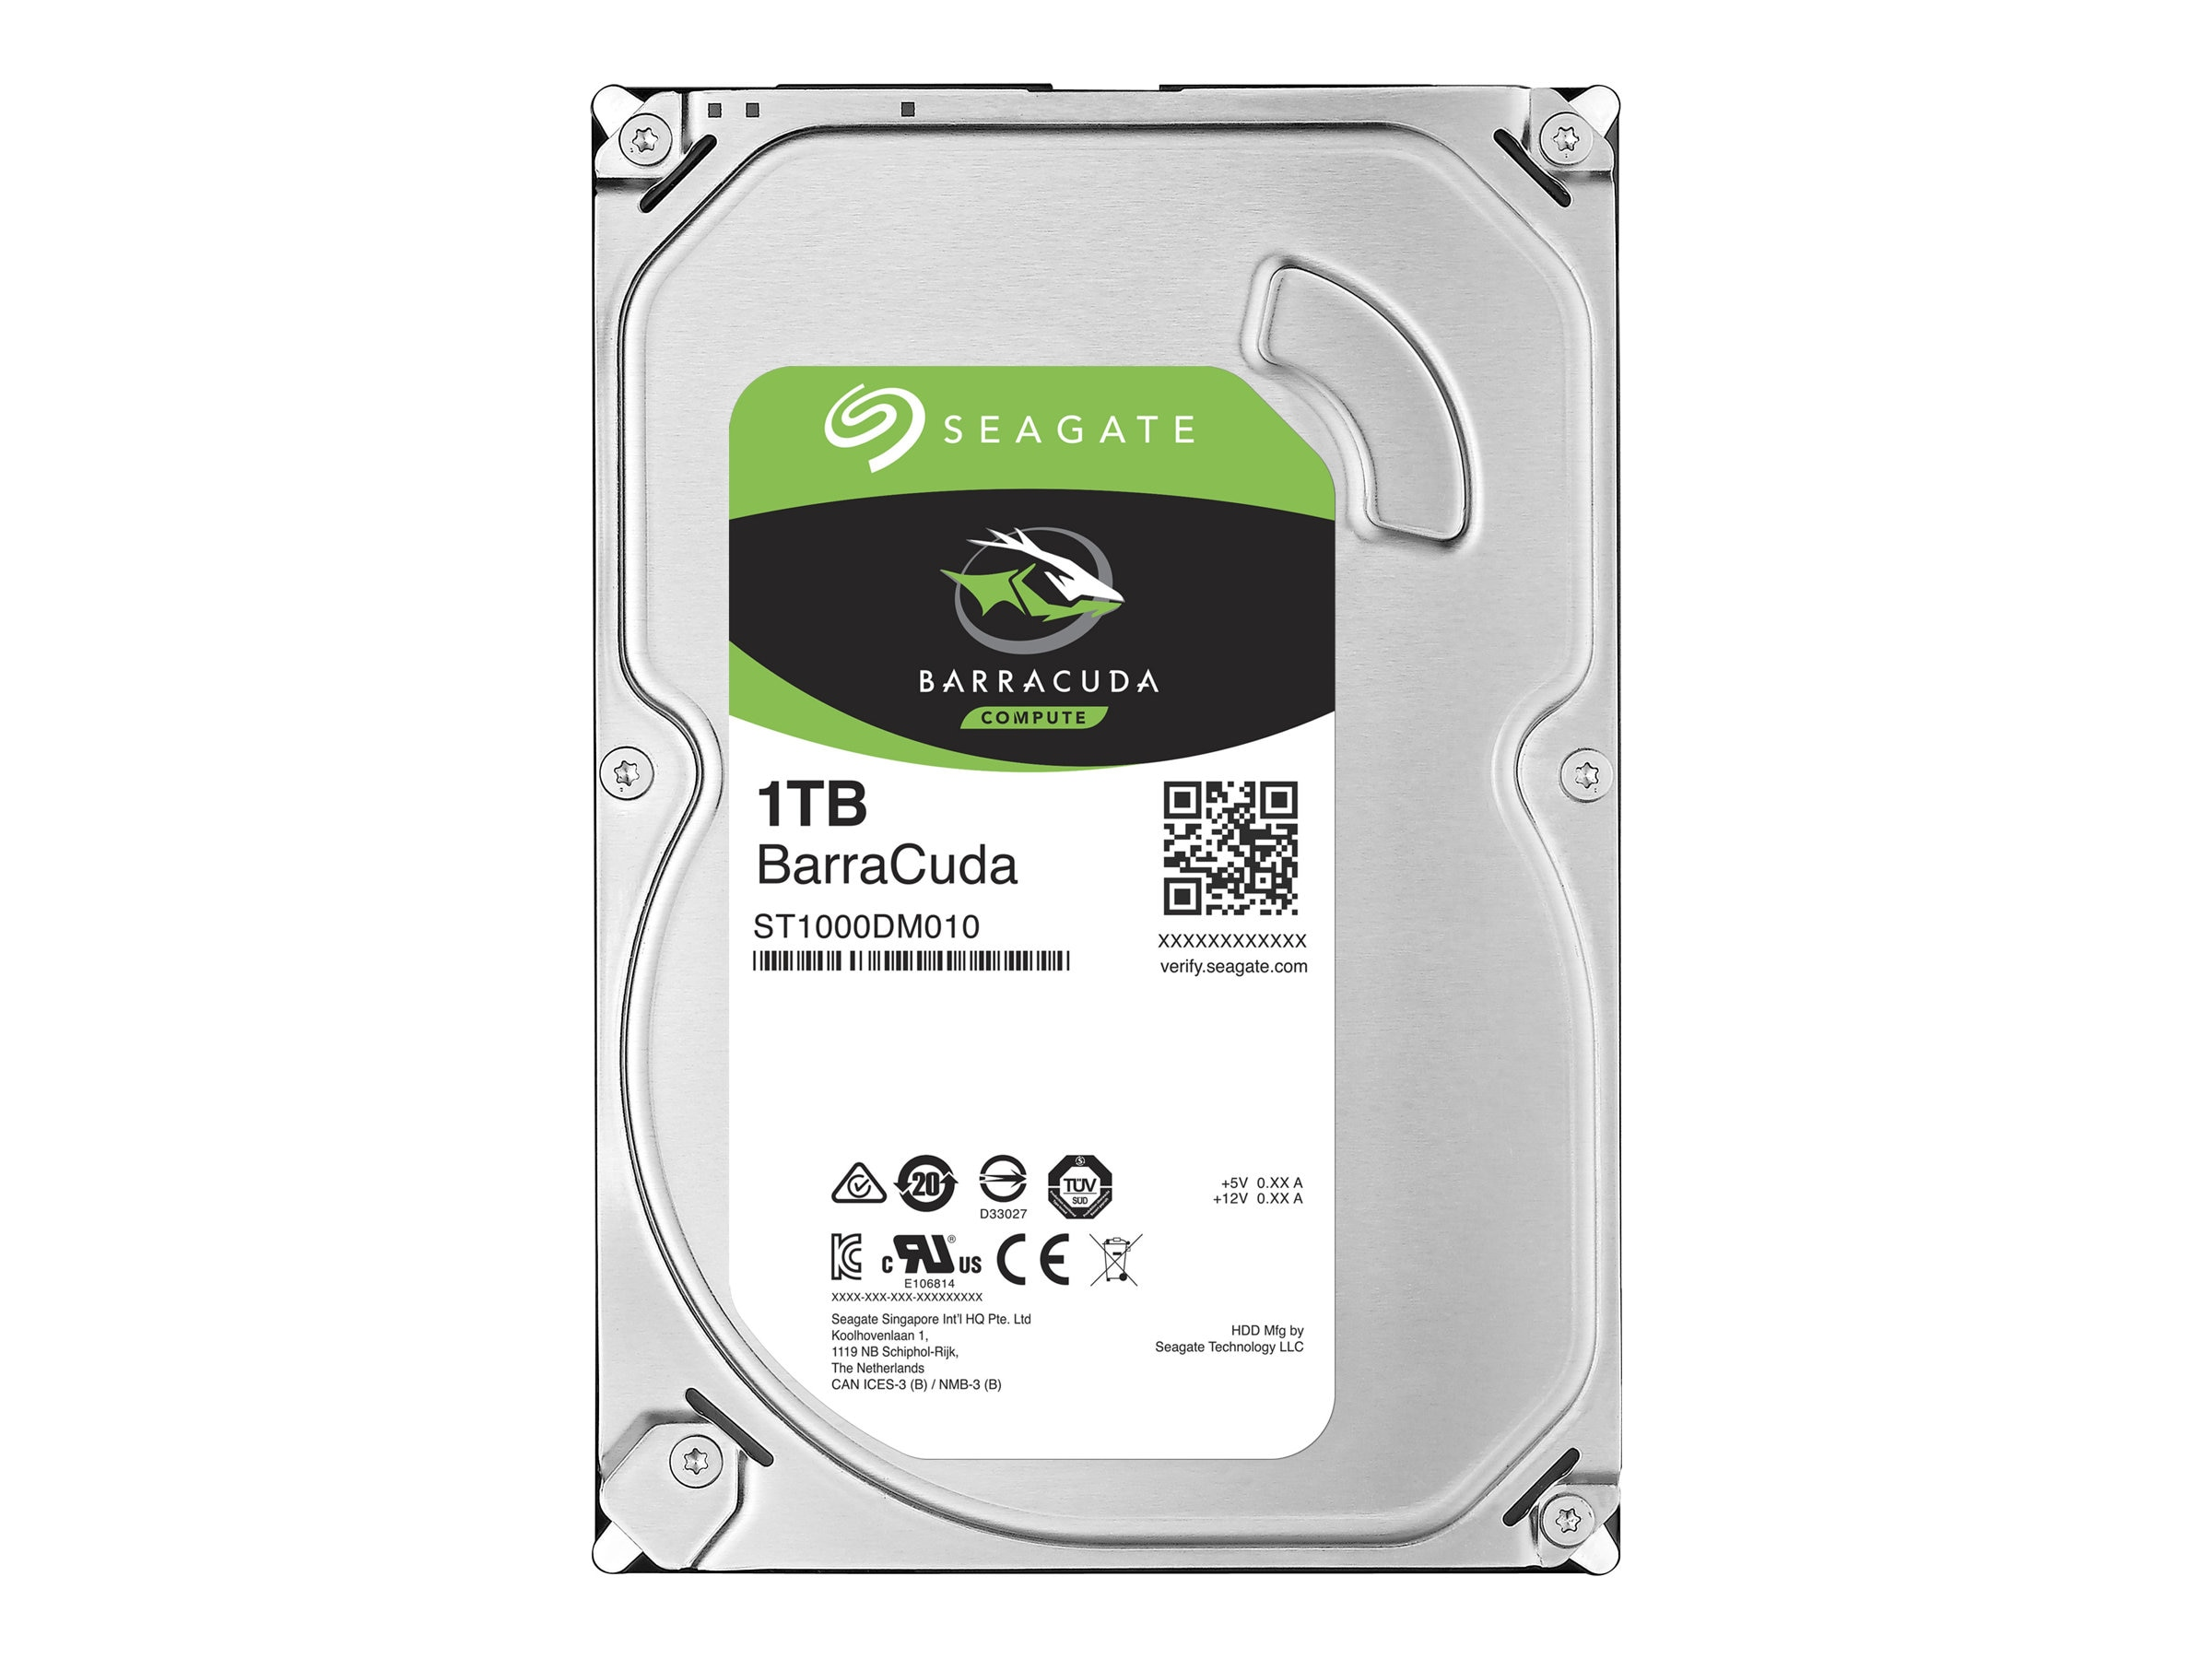 Seagate Technology ST1000DM010 Image 2